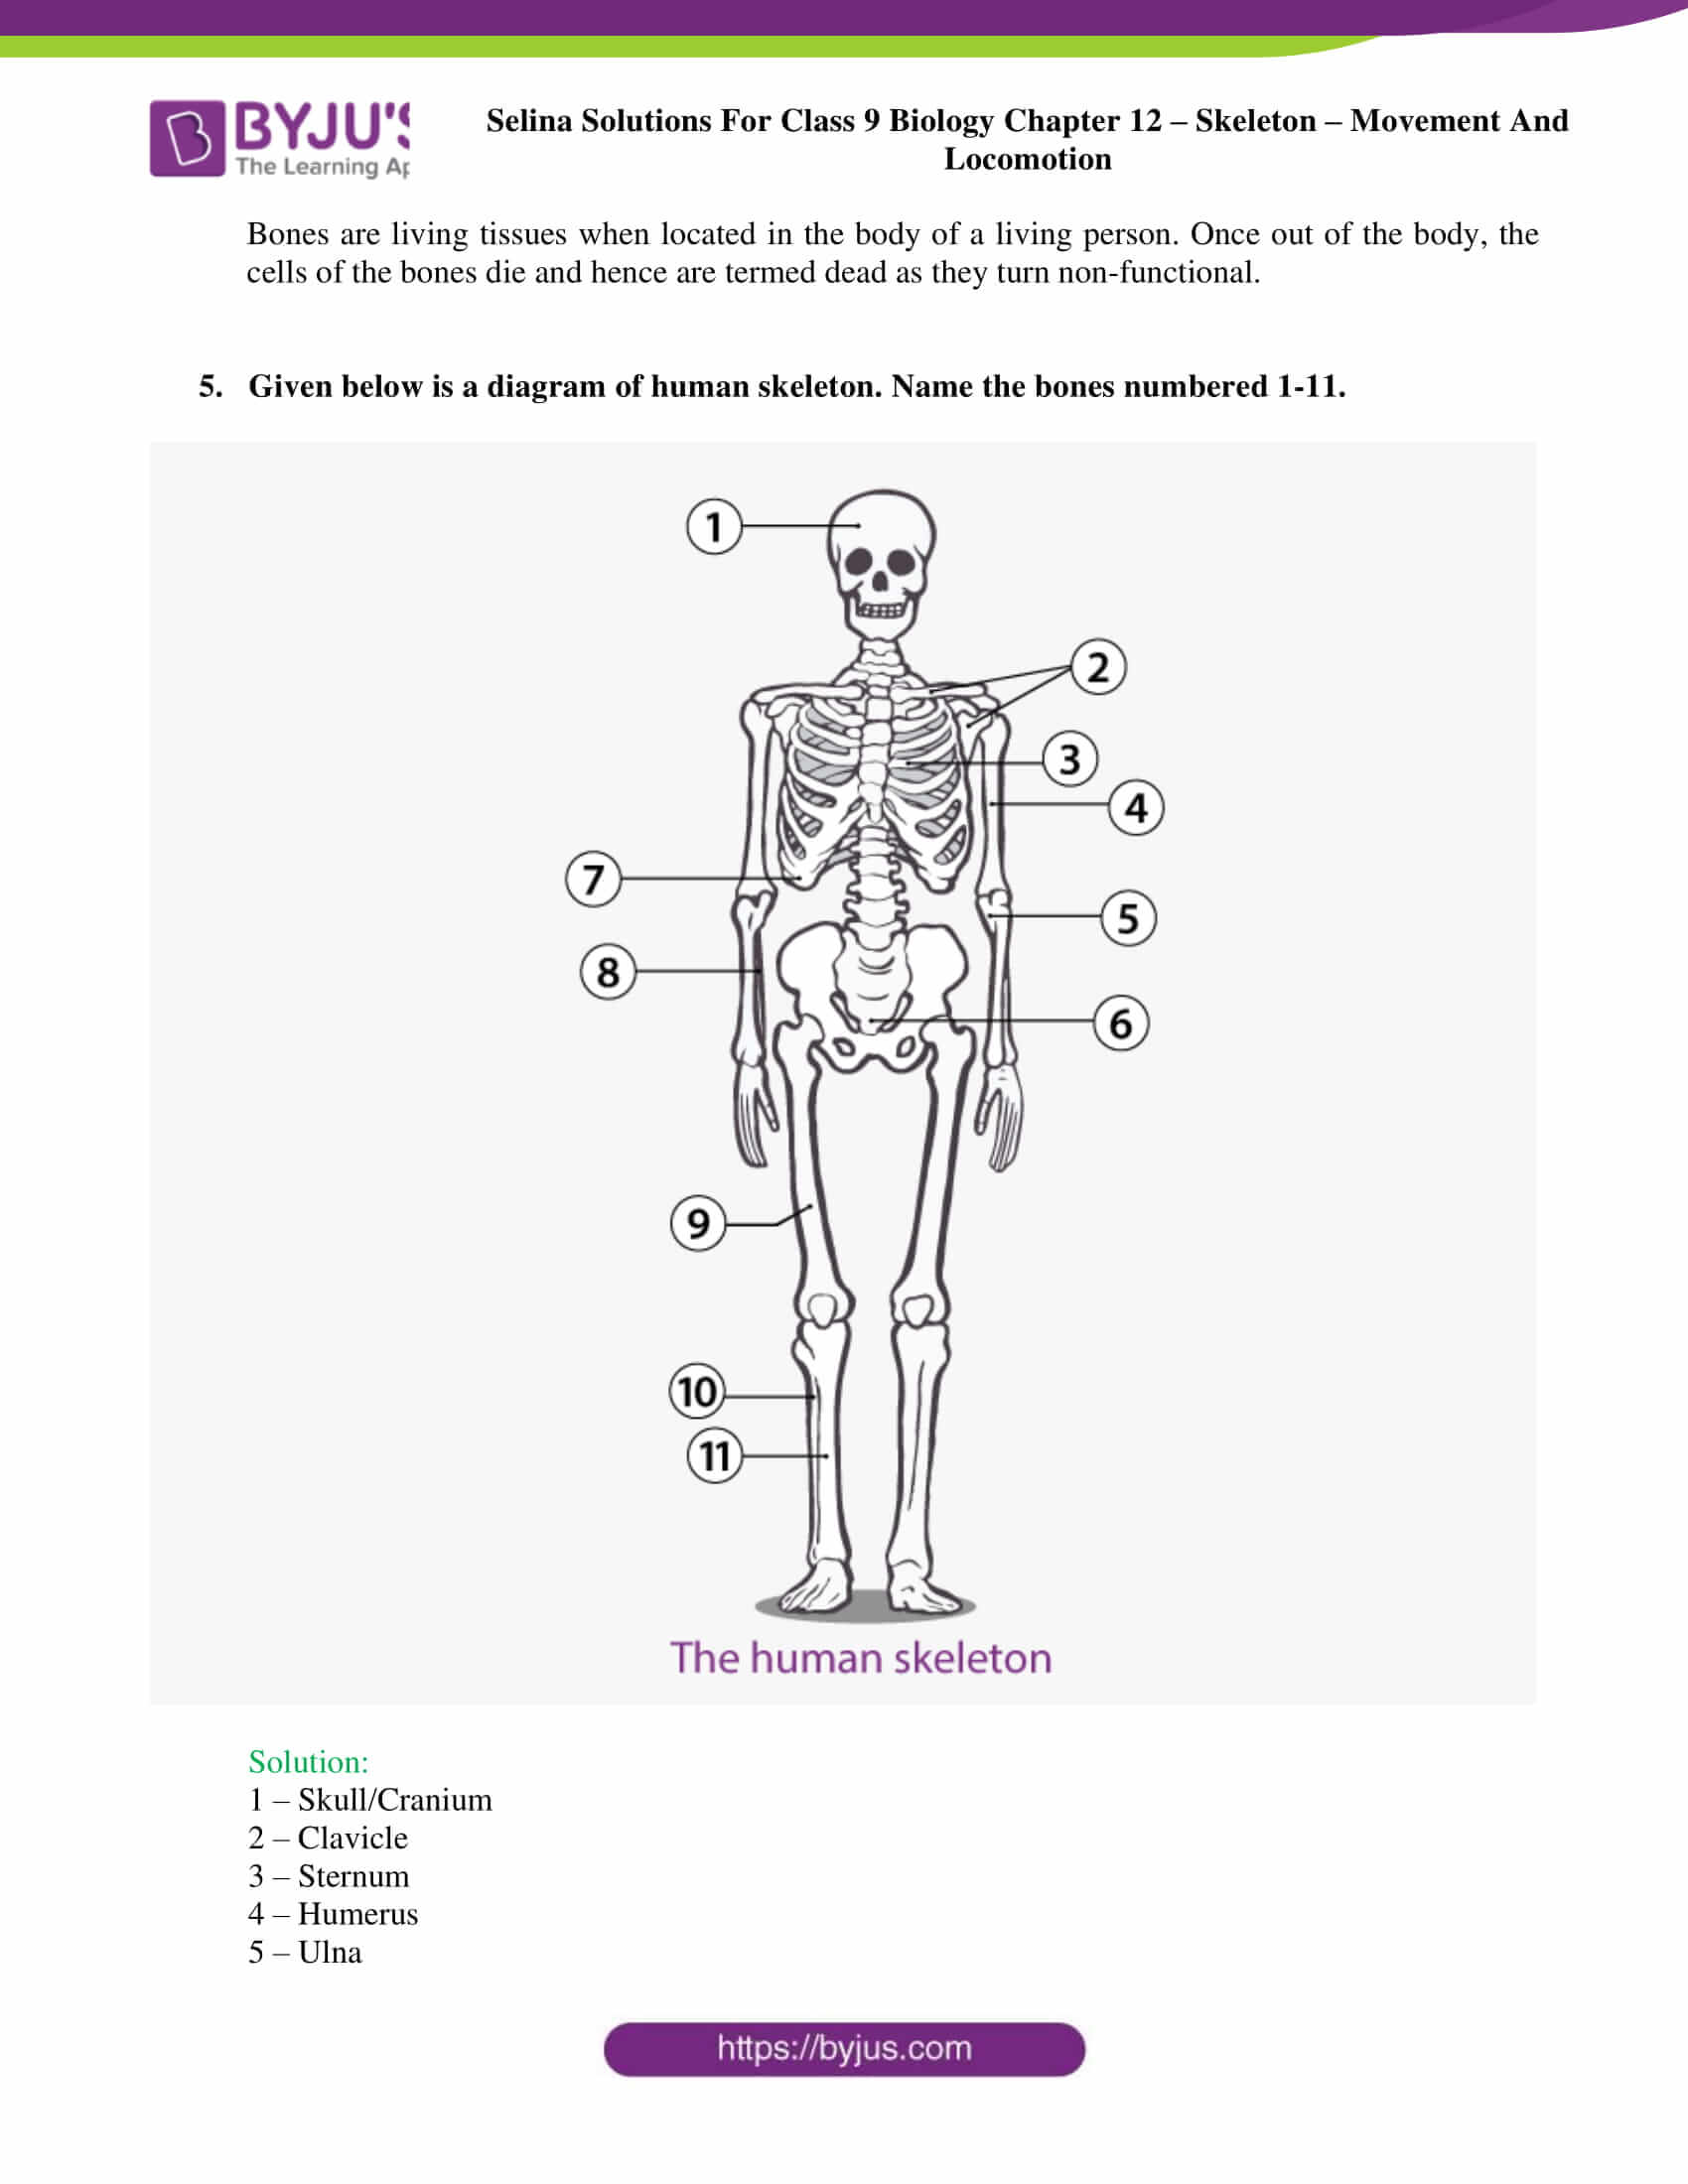 selina Solutions For Class 9 Biology Chapter 12 part 8